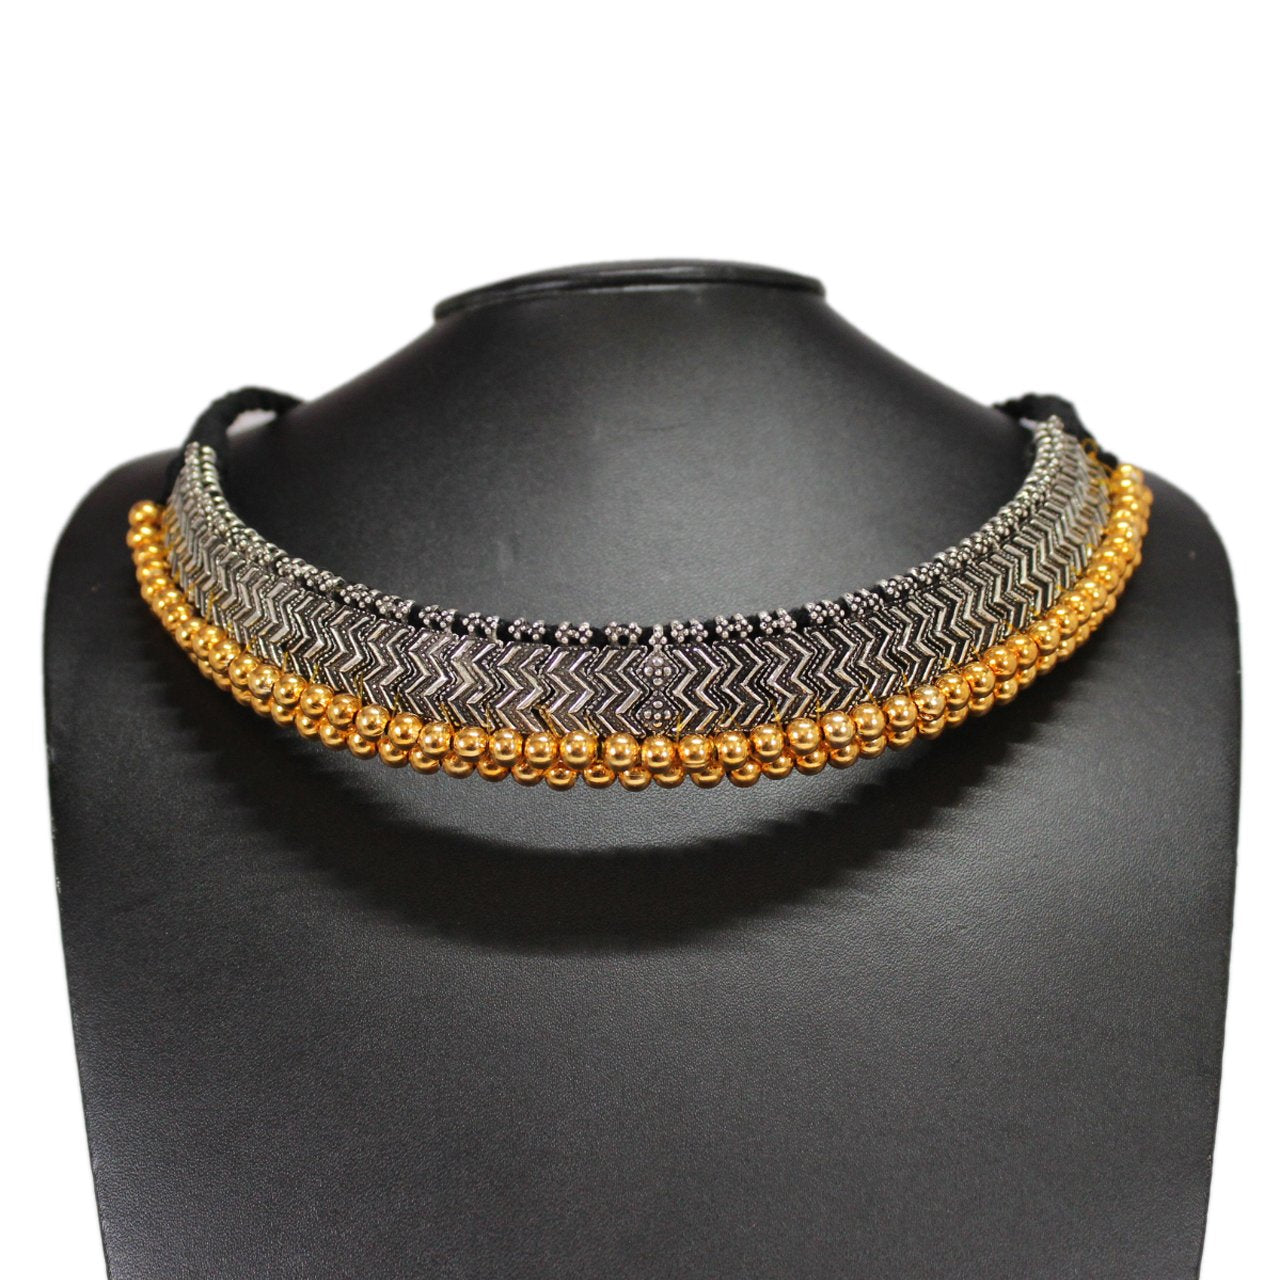 Dual Tone Oxidised German Silver Braided Choker Necklace Set